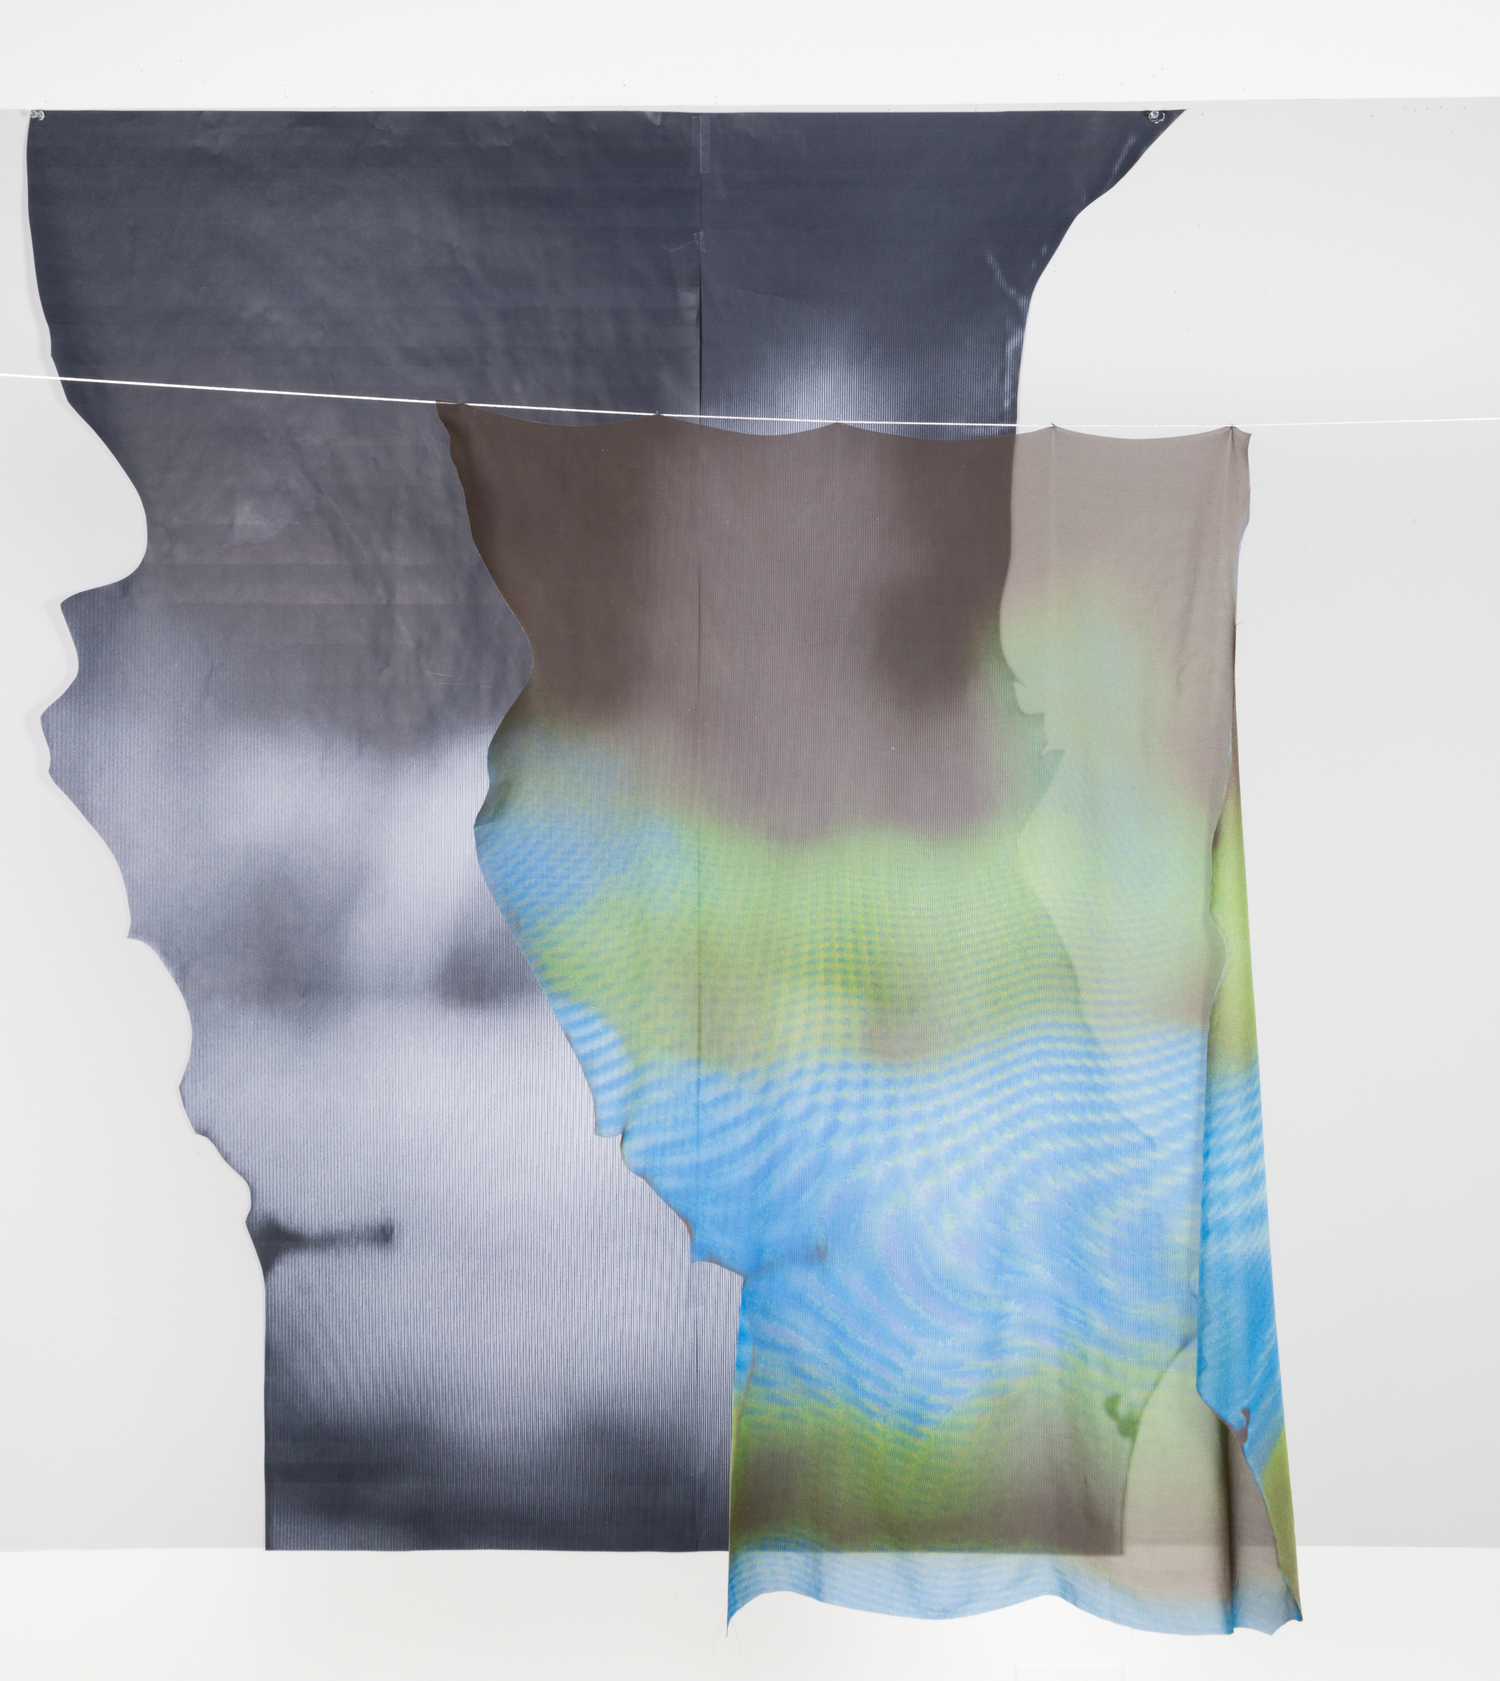 Untitled (Gaps), 2016, Digitally printed fabric, screen print on metalized film, and laundry line, 60 x 46 inches, dimensions variable.